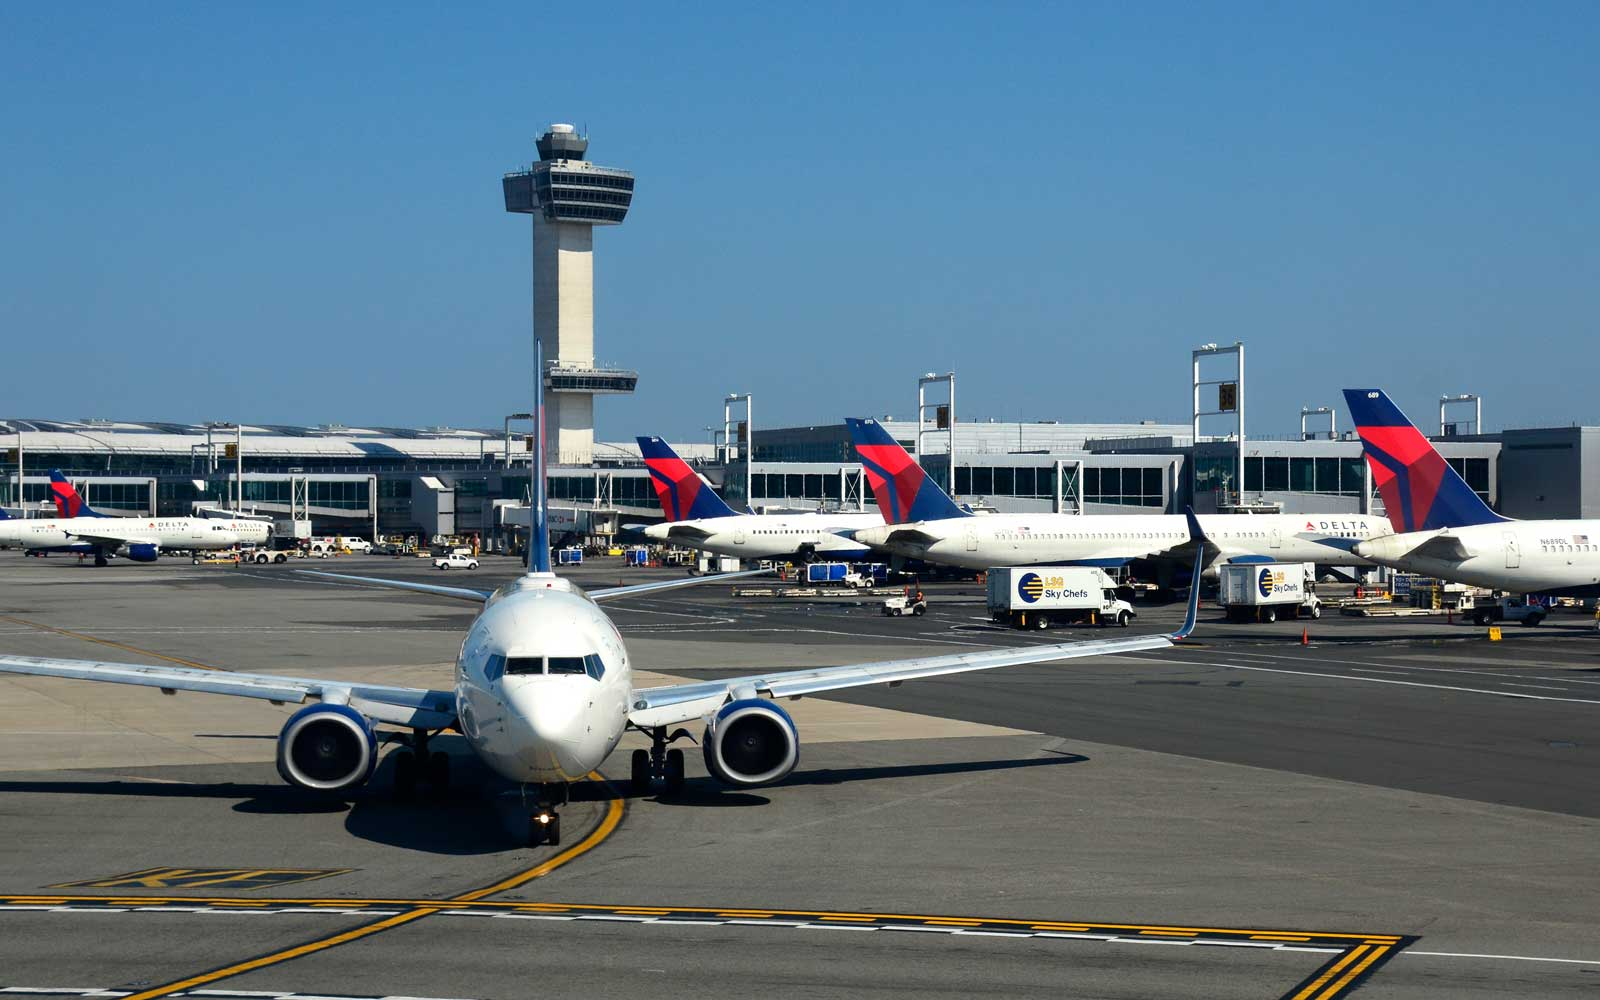 Delta Airlines at JFK Airport, New York